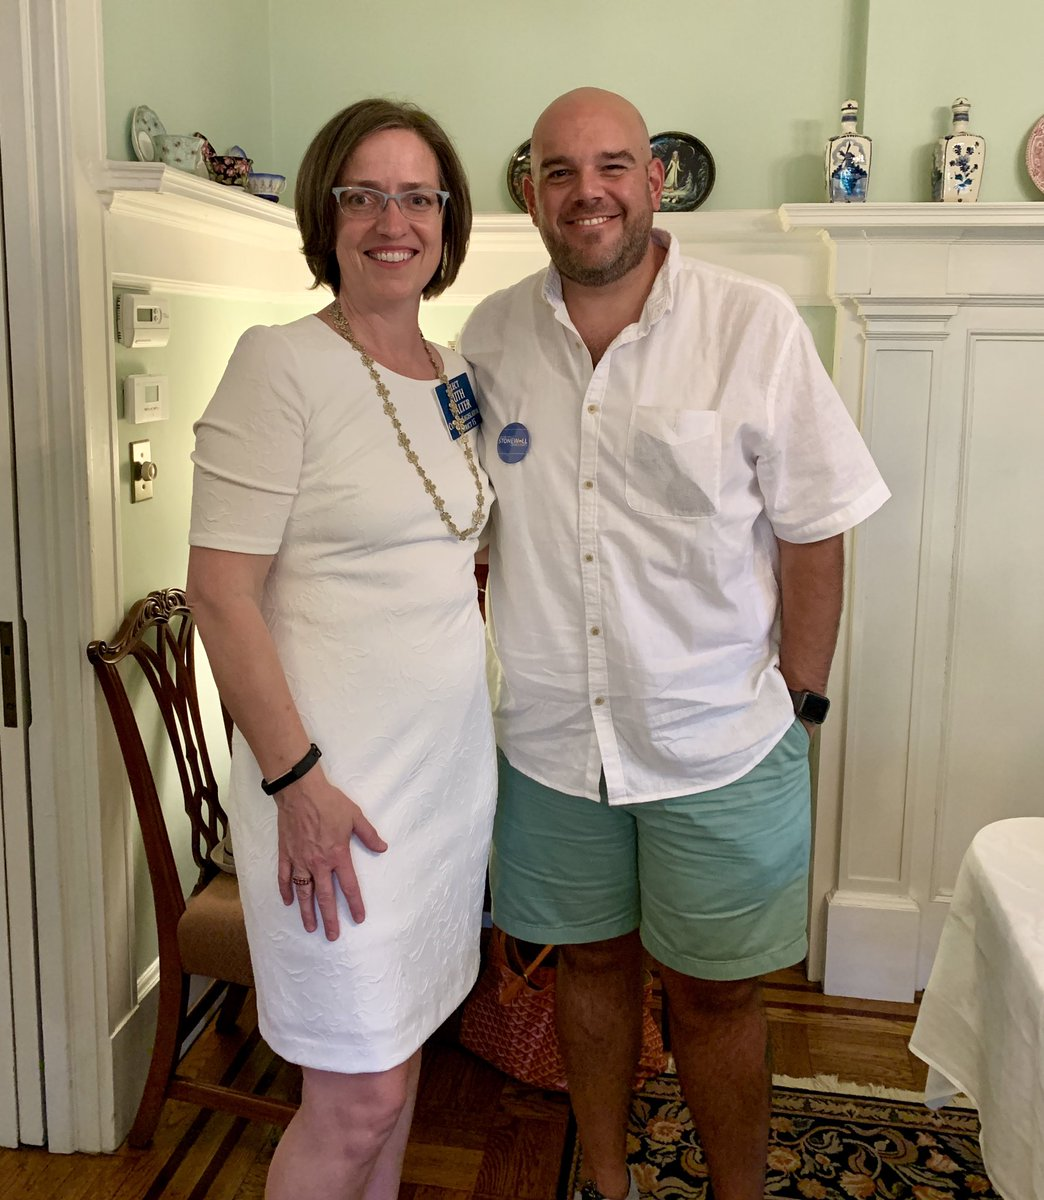 Proud to support Ruth Walter for County Legislator. #BlueWave #Election2019<br>http://pic.twitter.com/9By2Ff7W3E